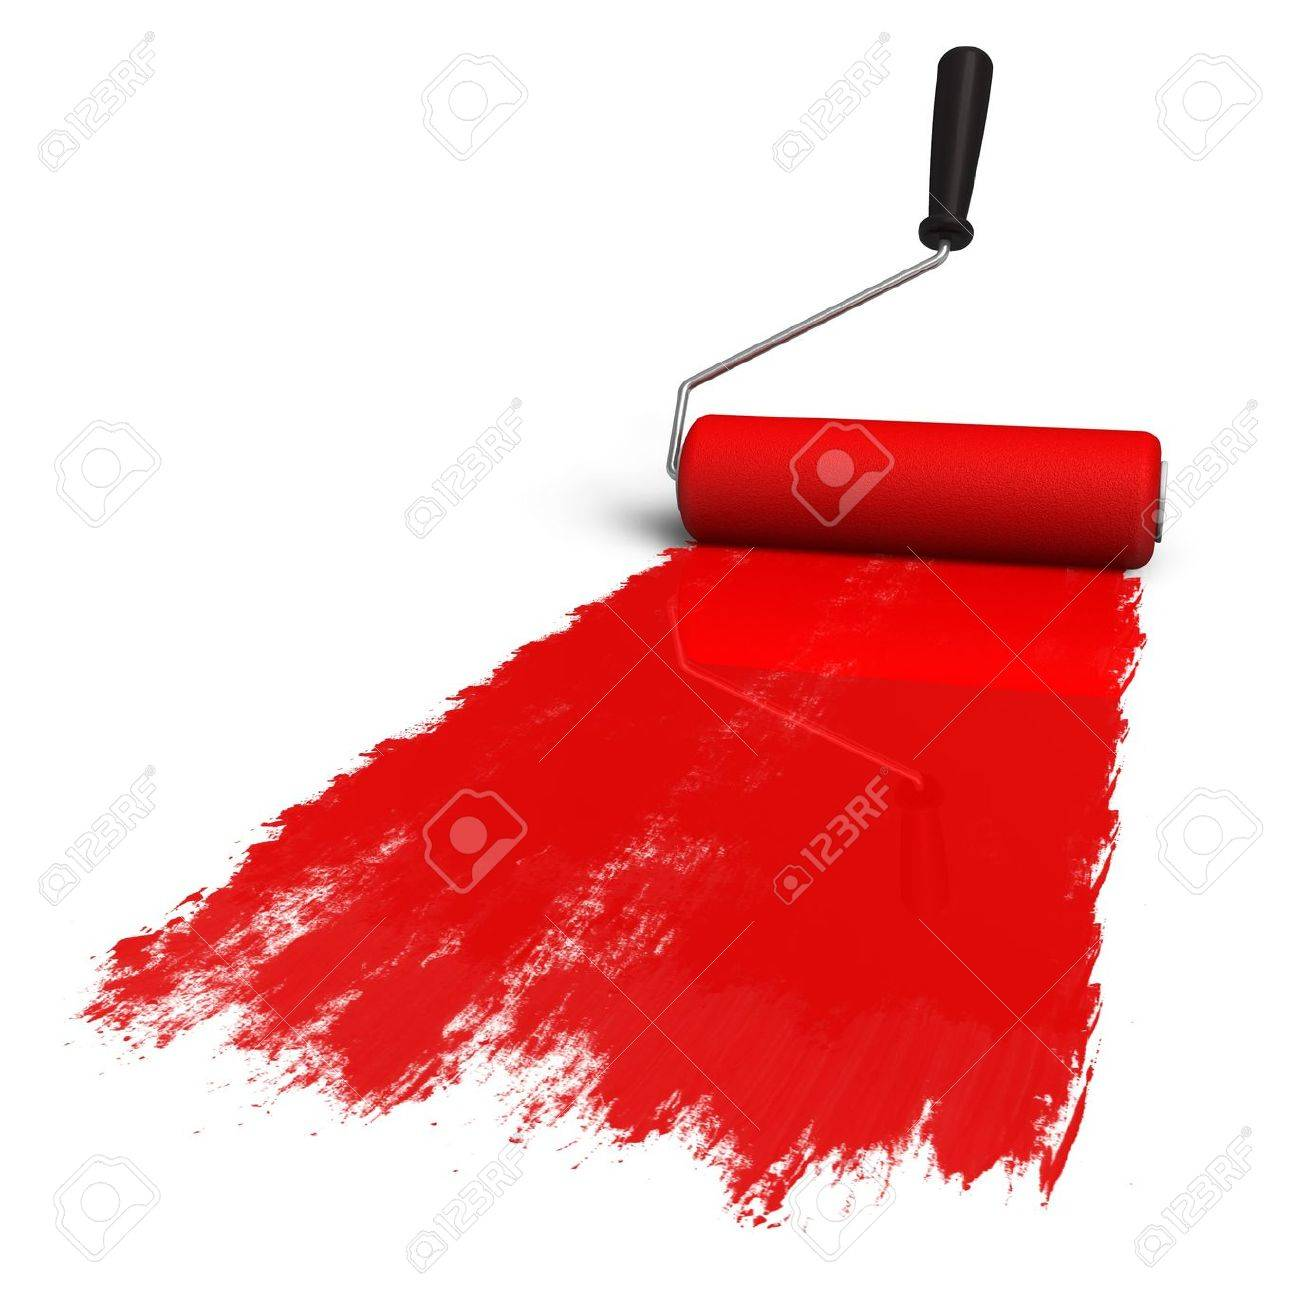 Red roller brush with trail of paint Stock Photo - 8920571